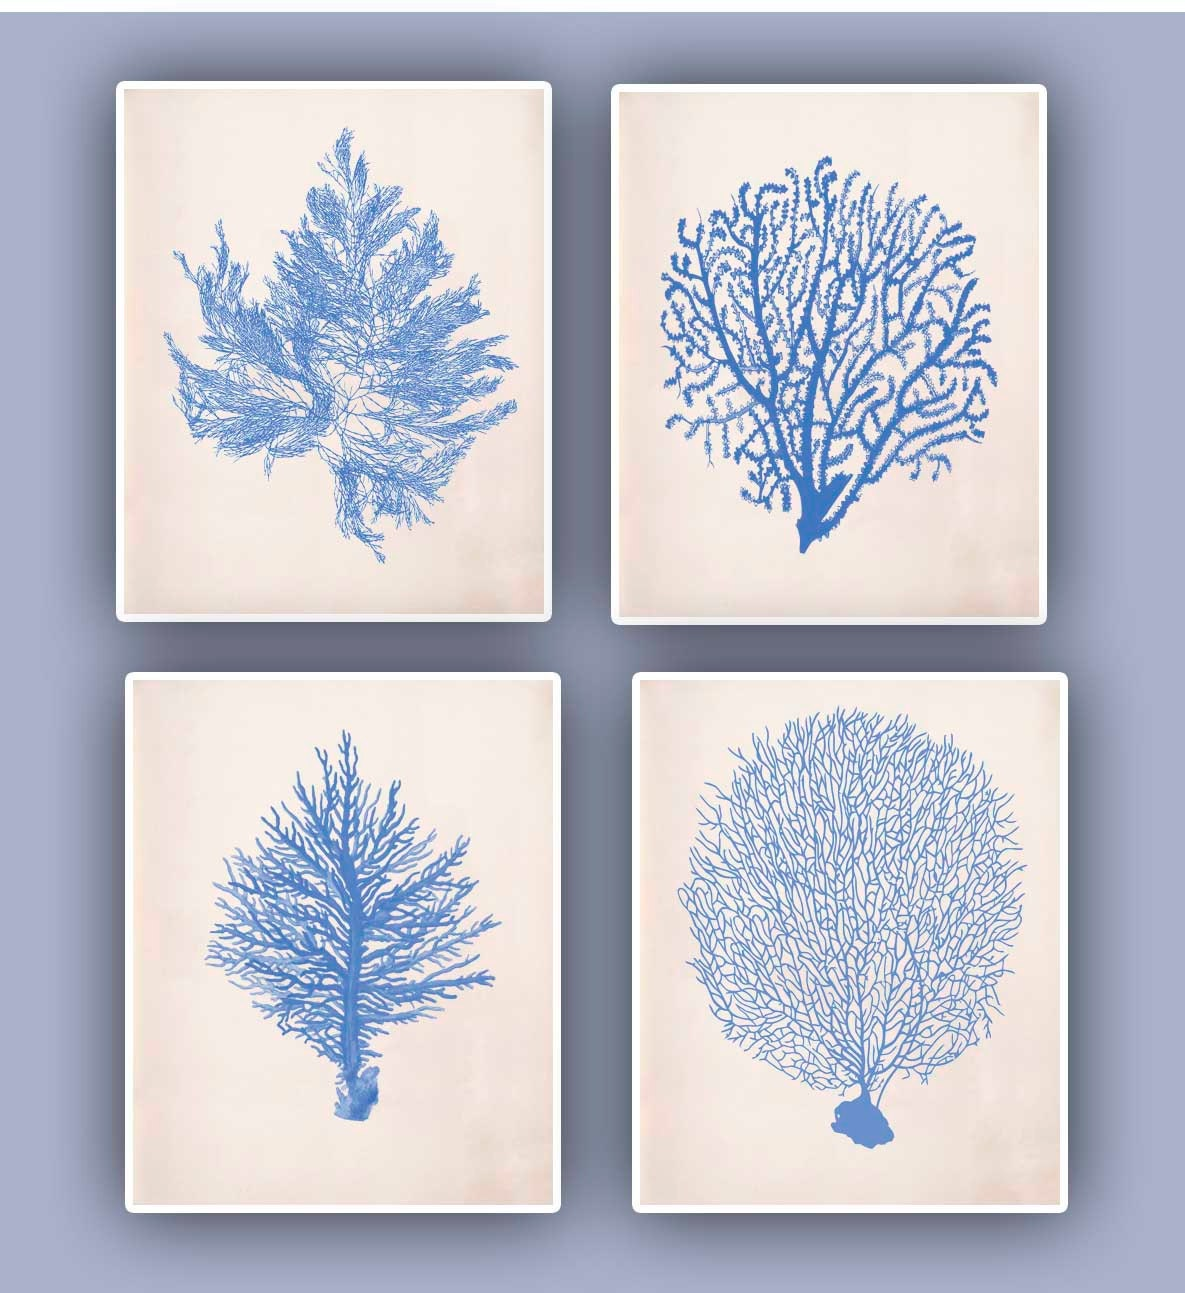 Nautical prints Sea Coral fan prints modern vintage inspired